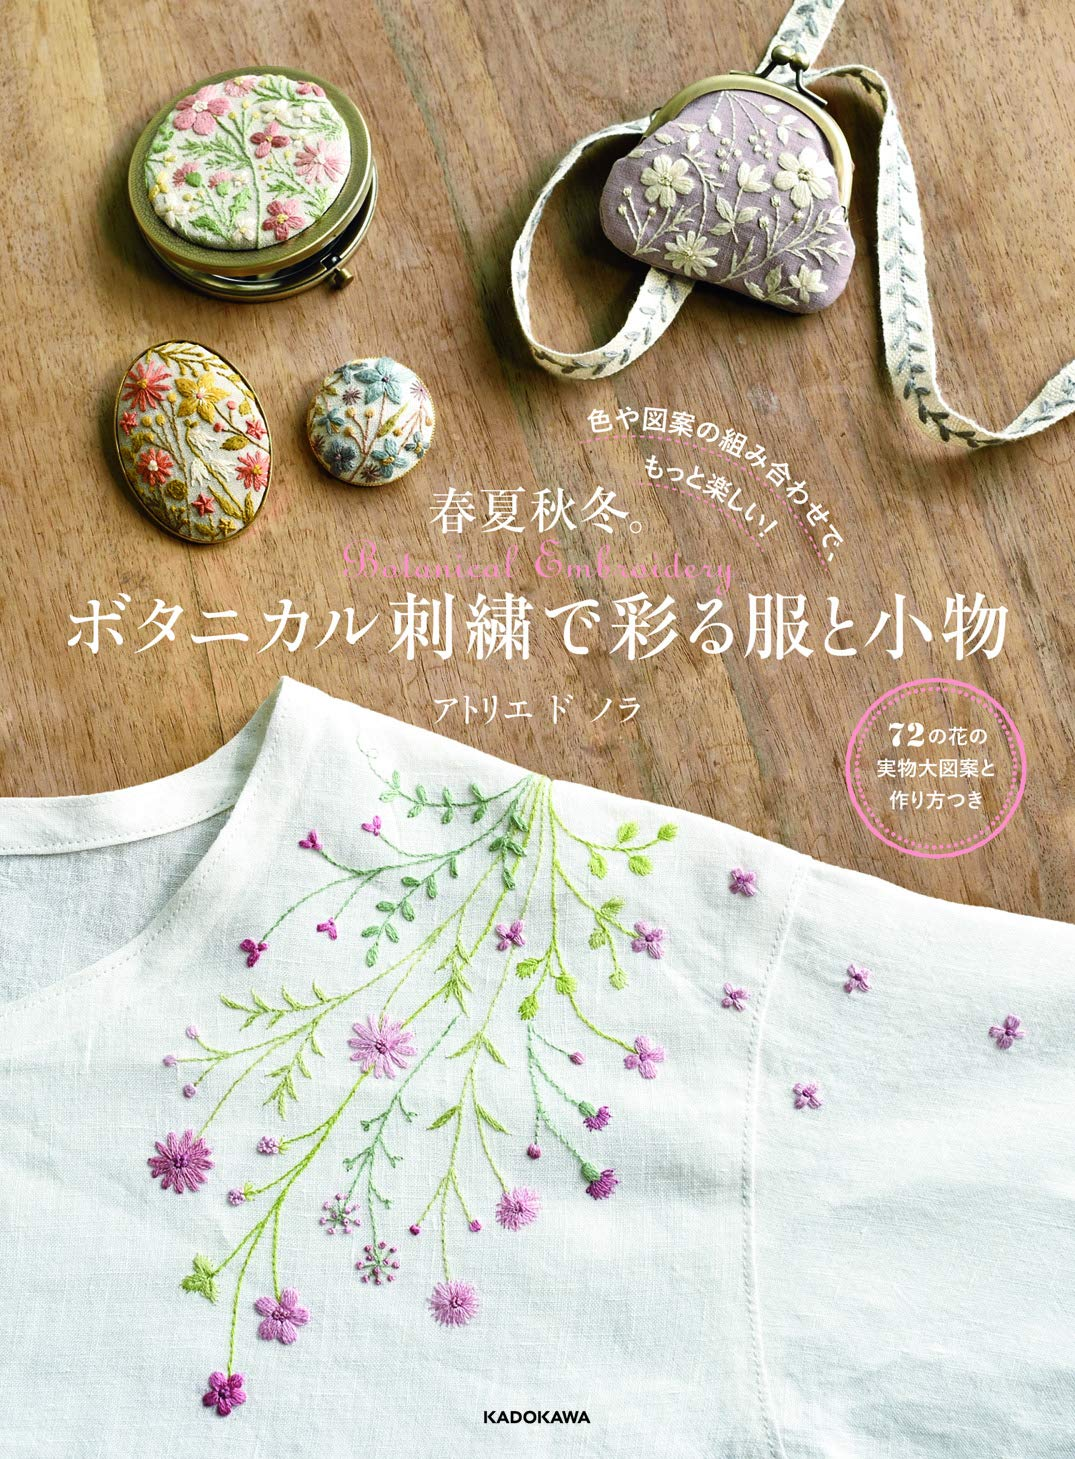 Clothes and accessories colored with botanical embroidery